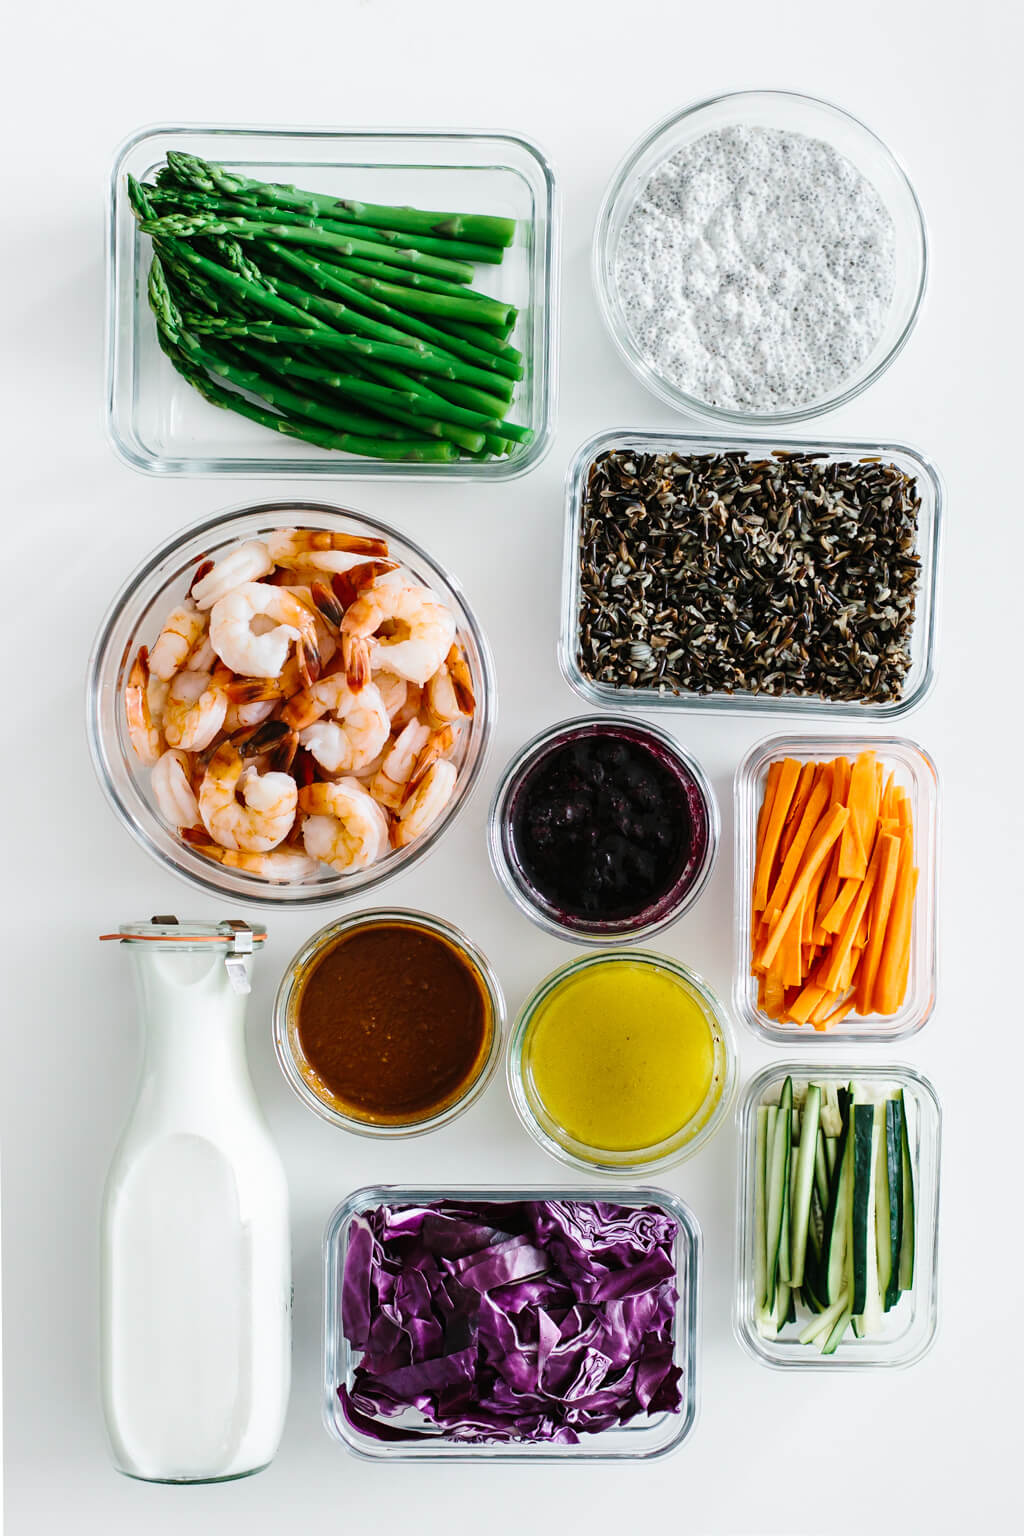 Take advantage of fresh, seasonal produce in this healthy meal prep for spring guide. With 11 ingredients meal prepped you can make a variety of healthy recipes.